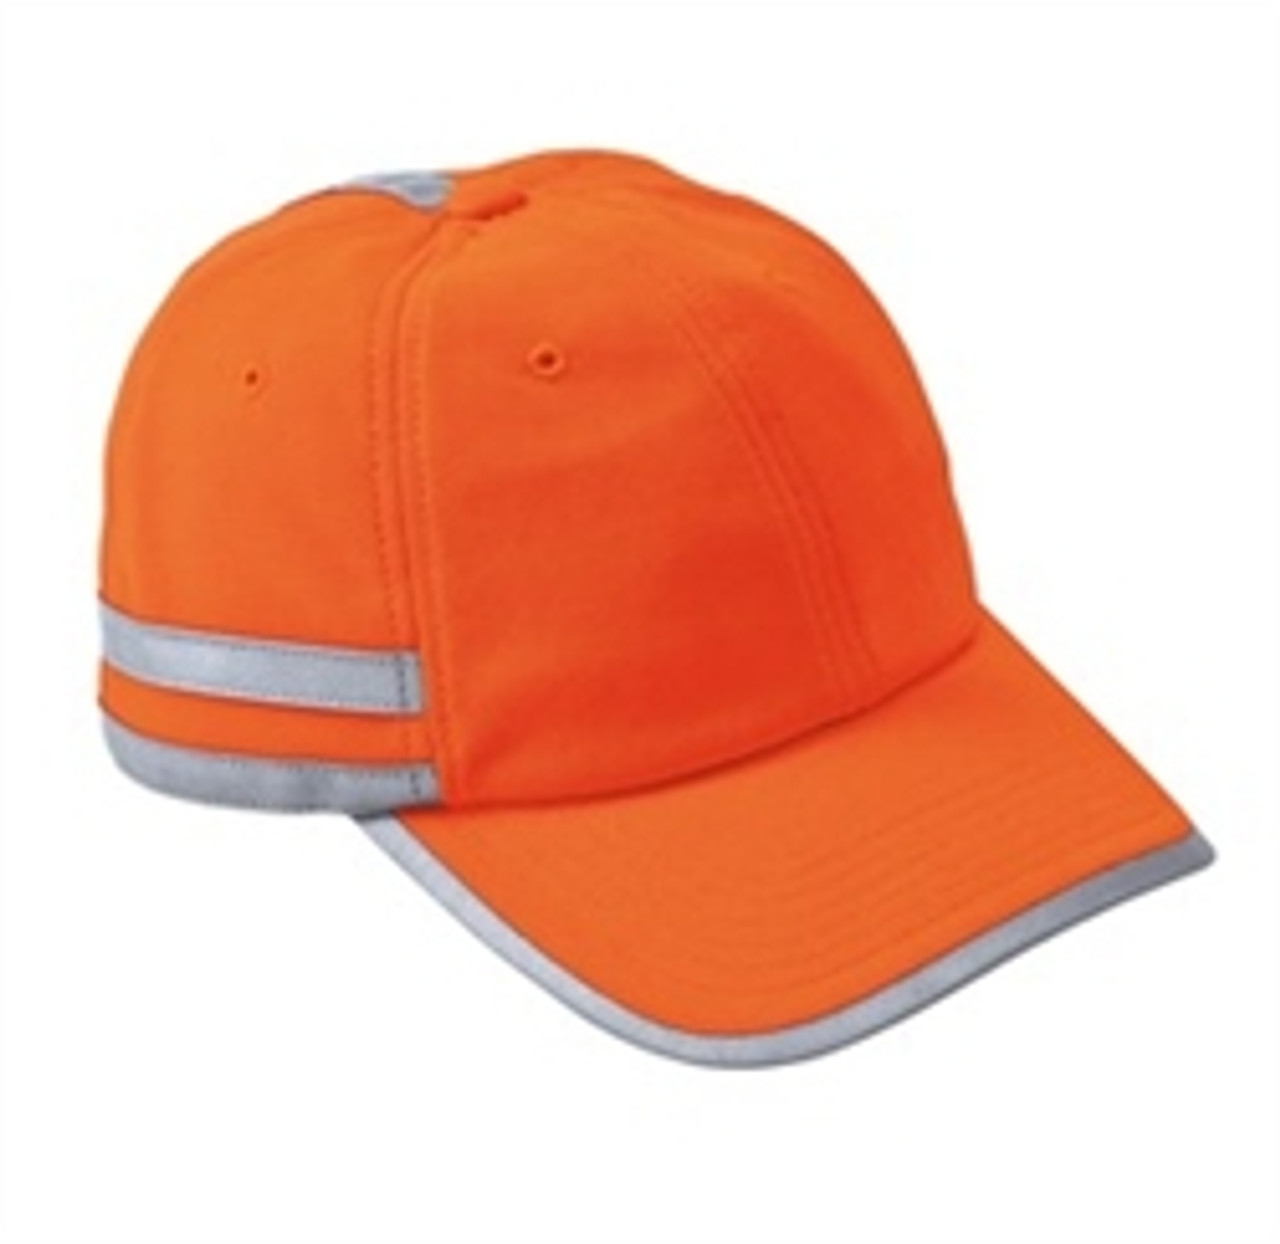 ANSI Safety Baseball Cap - Sanmar CS801 *Embroidery Available*